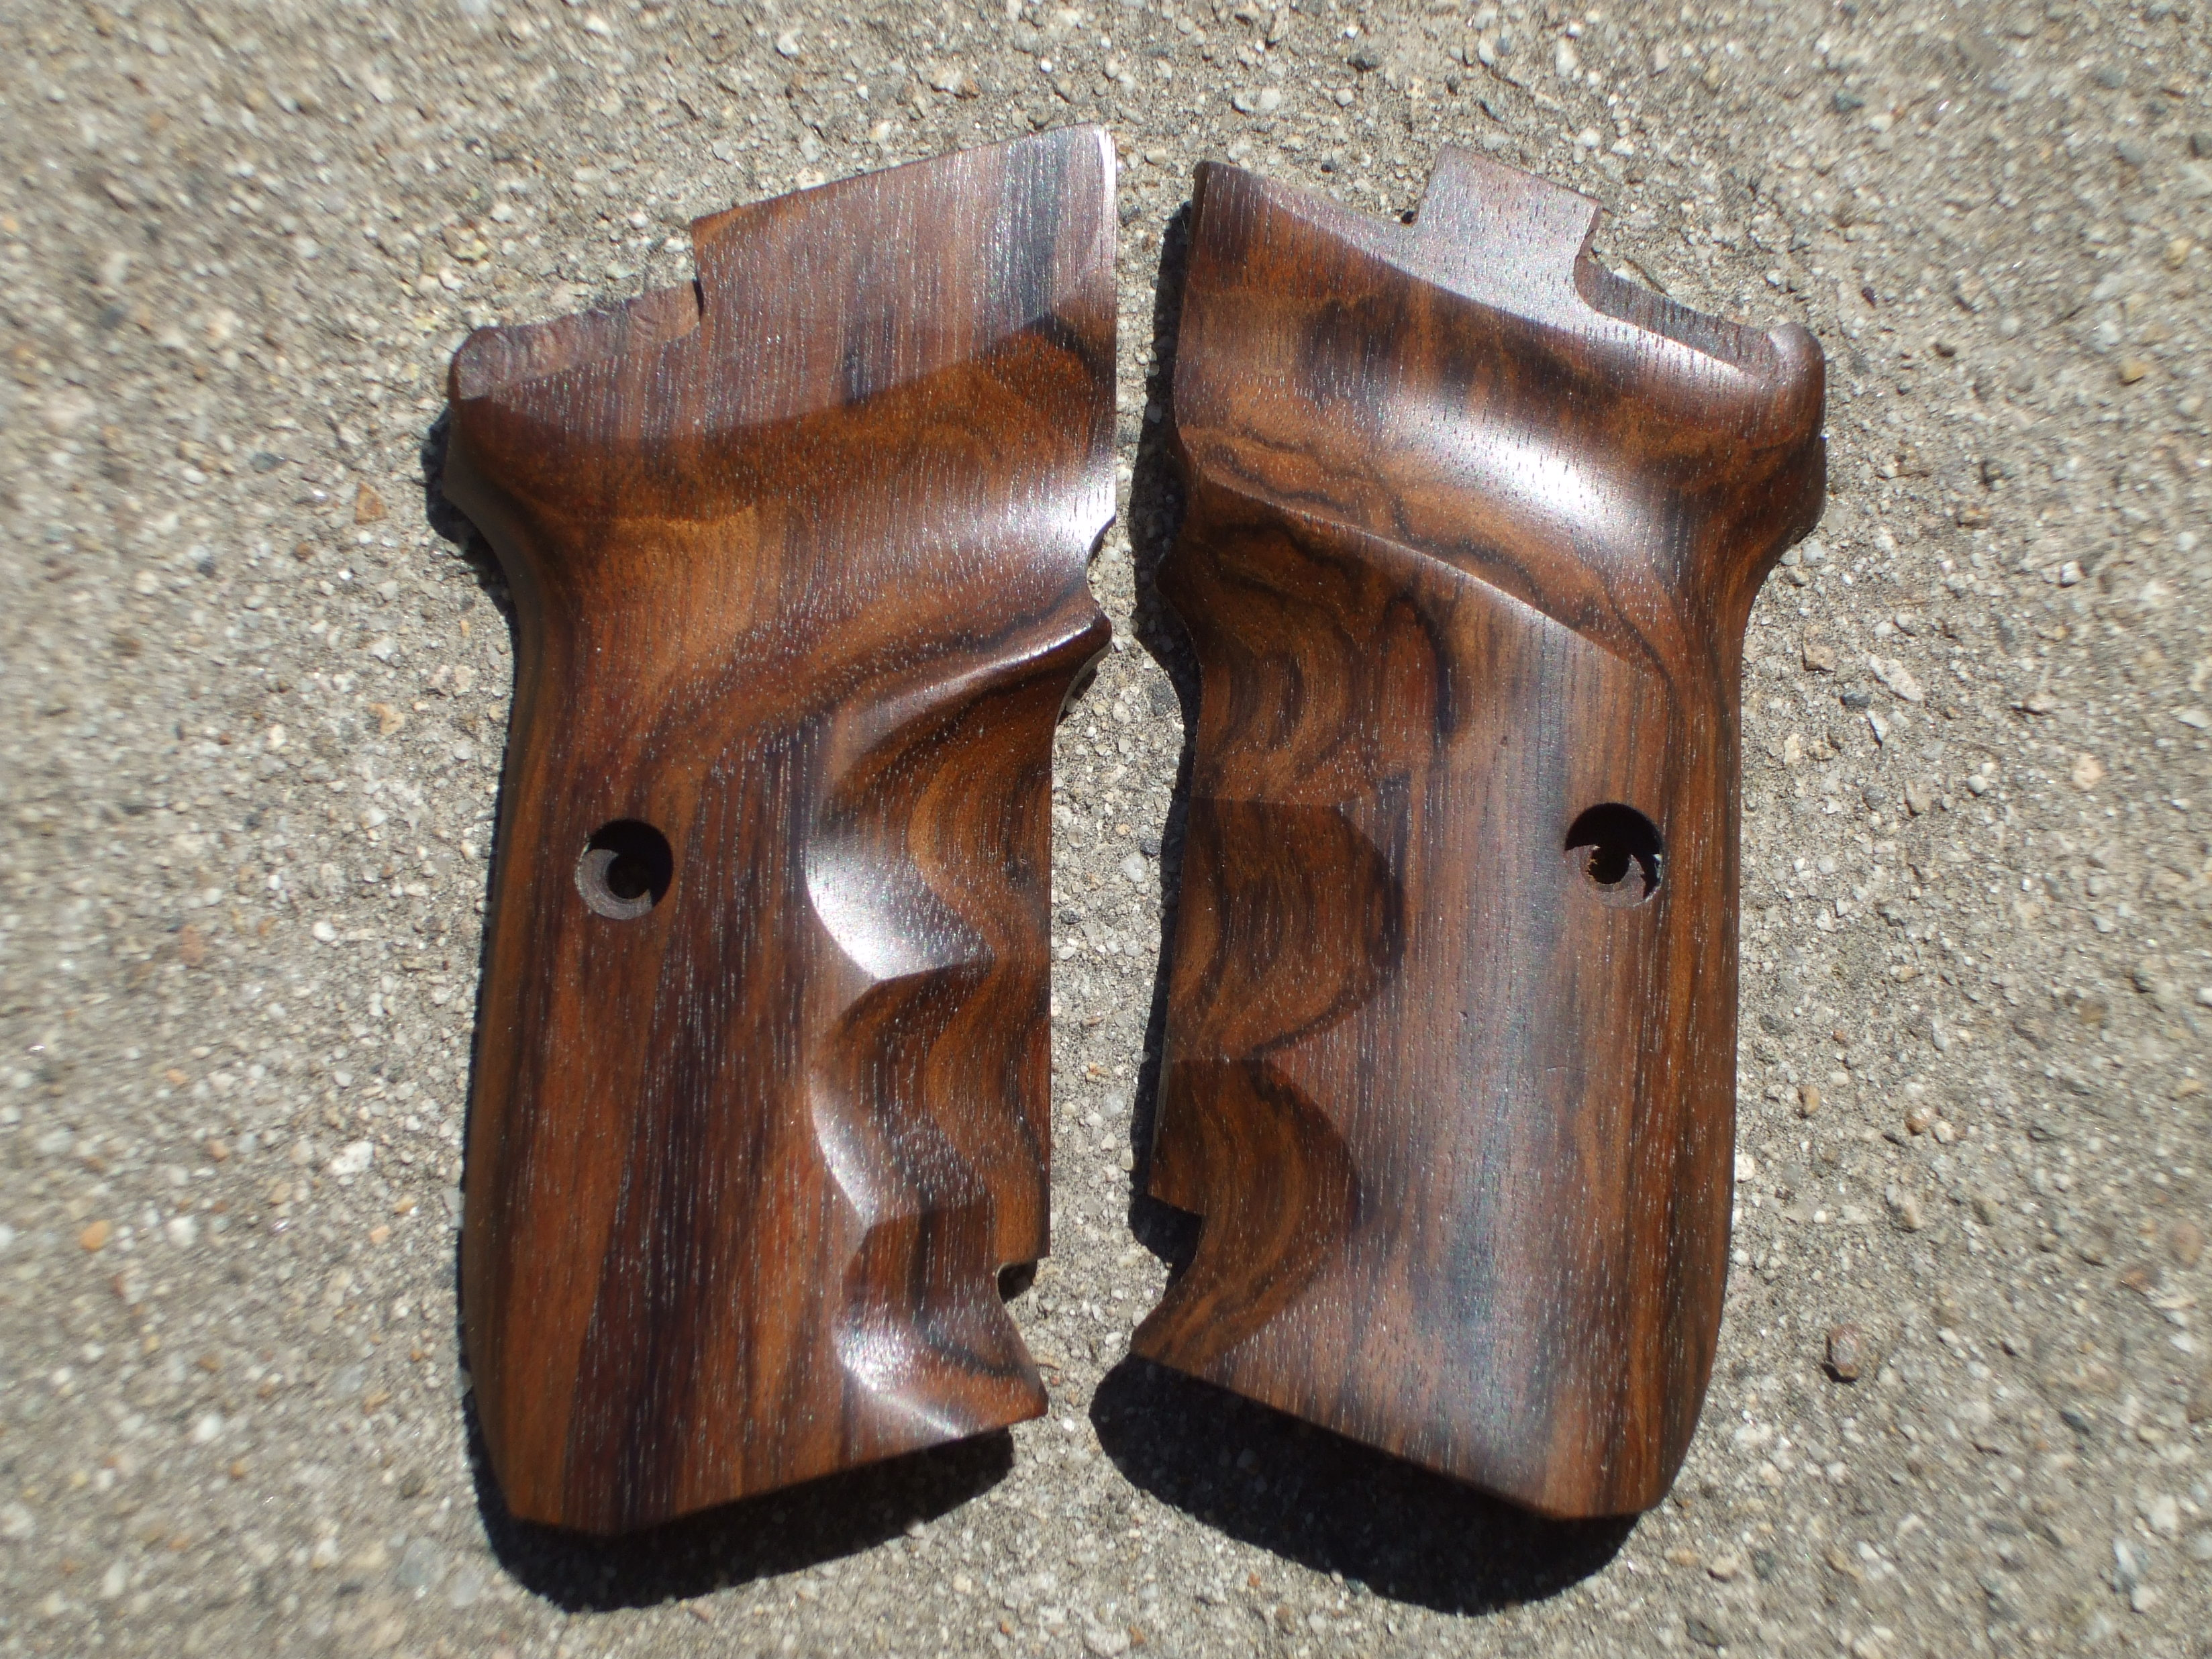 CZ 82/83 GRIPS w/ FINGER GROOVES (smooth #4) - full size